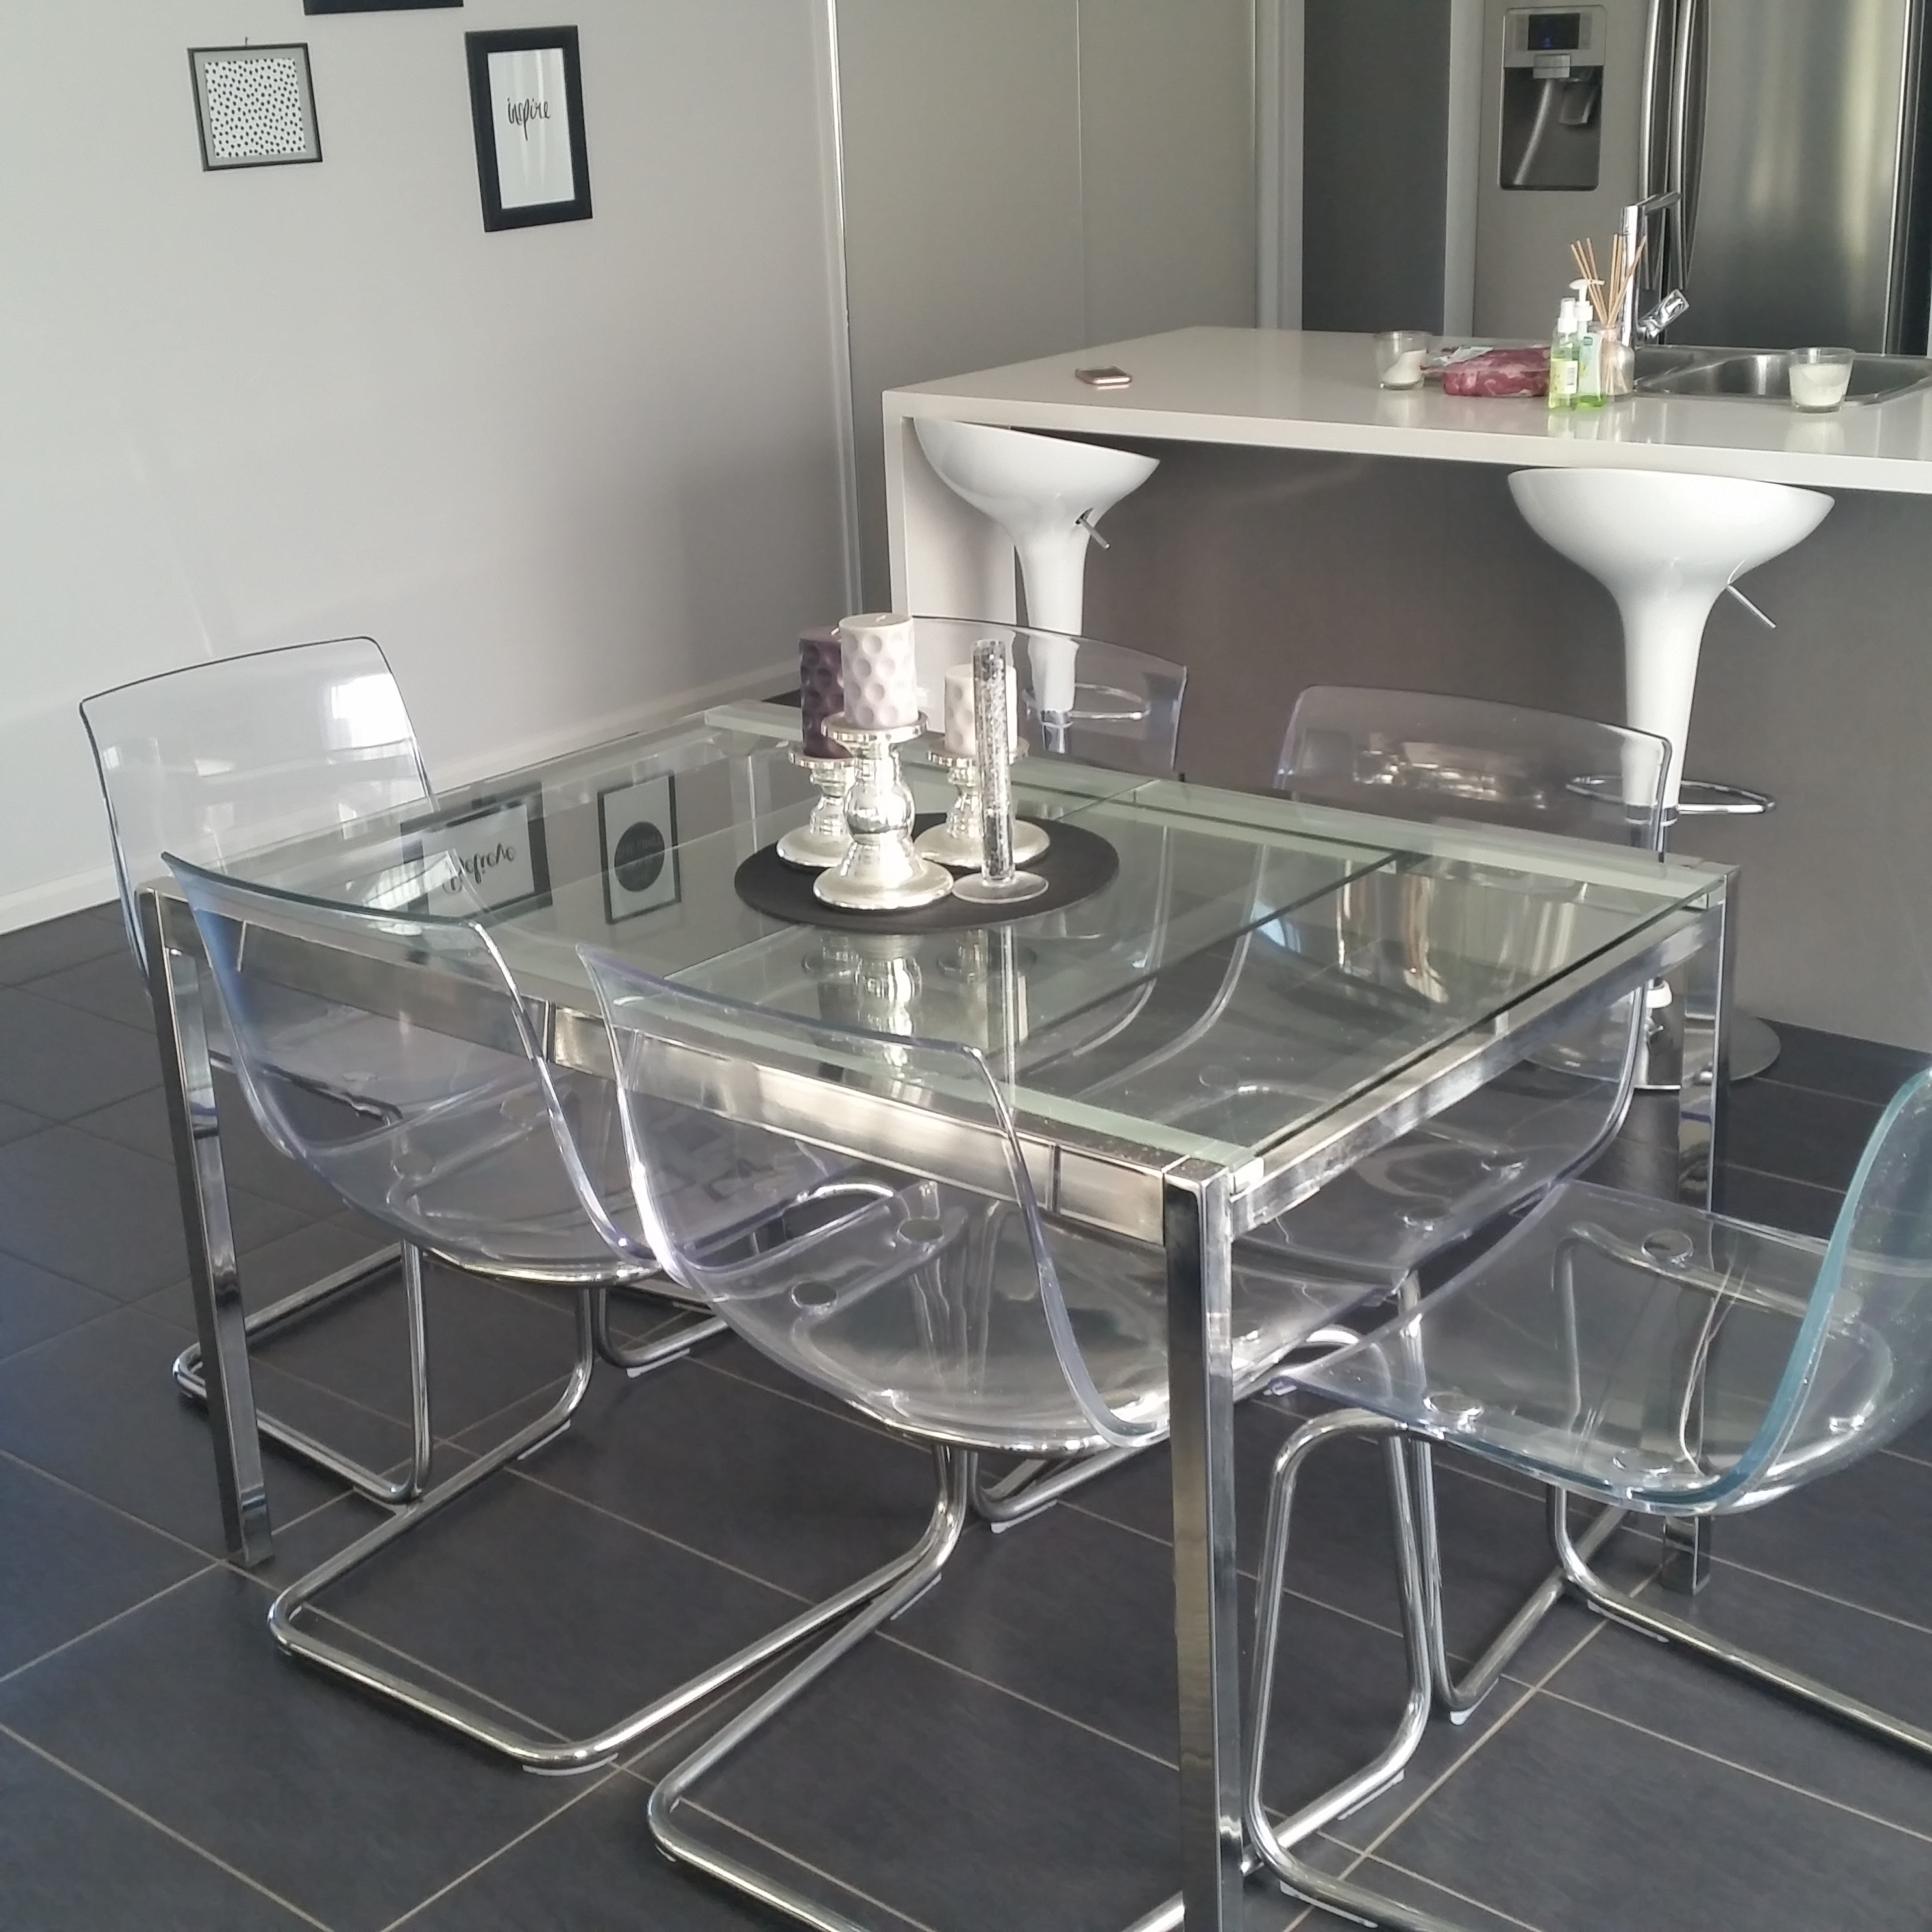 Glass Guru table top glass replacement & supply fit custom size to order